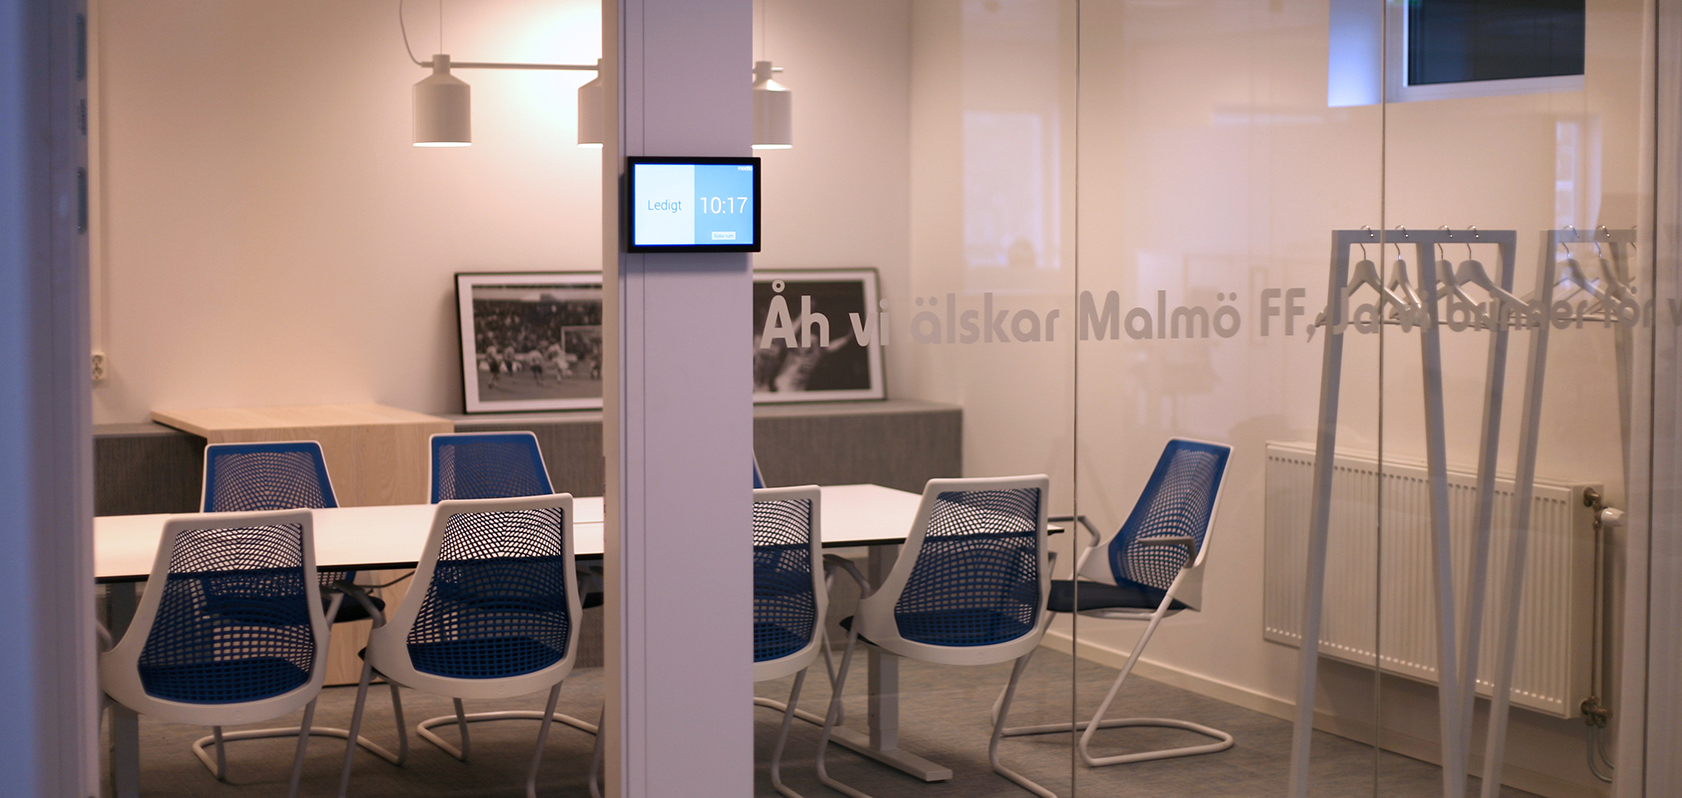 Conference room at Malmö FF